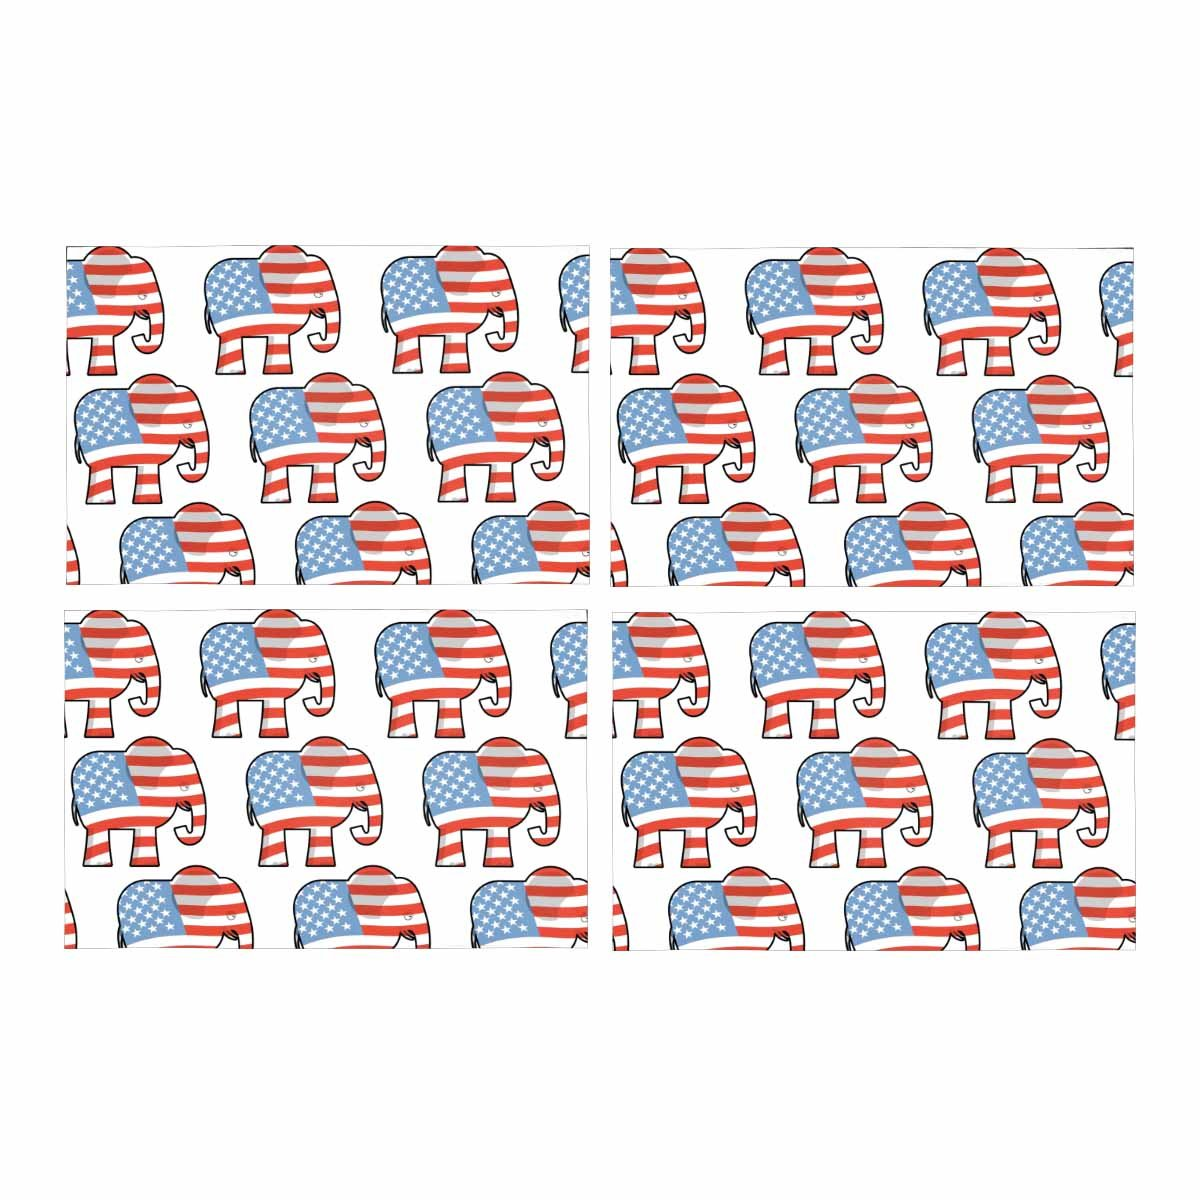 InterestPrint Republican Elephant Symbol of Political Party in America Placemat Place Mat Set of 4, Table Place Mats for Kitchen Dining Table Restaurant Home Decor 12''x18''